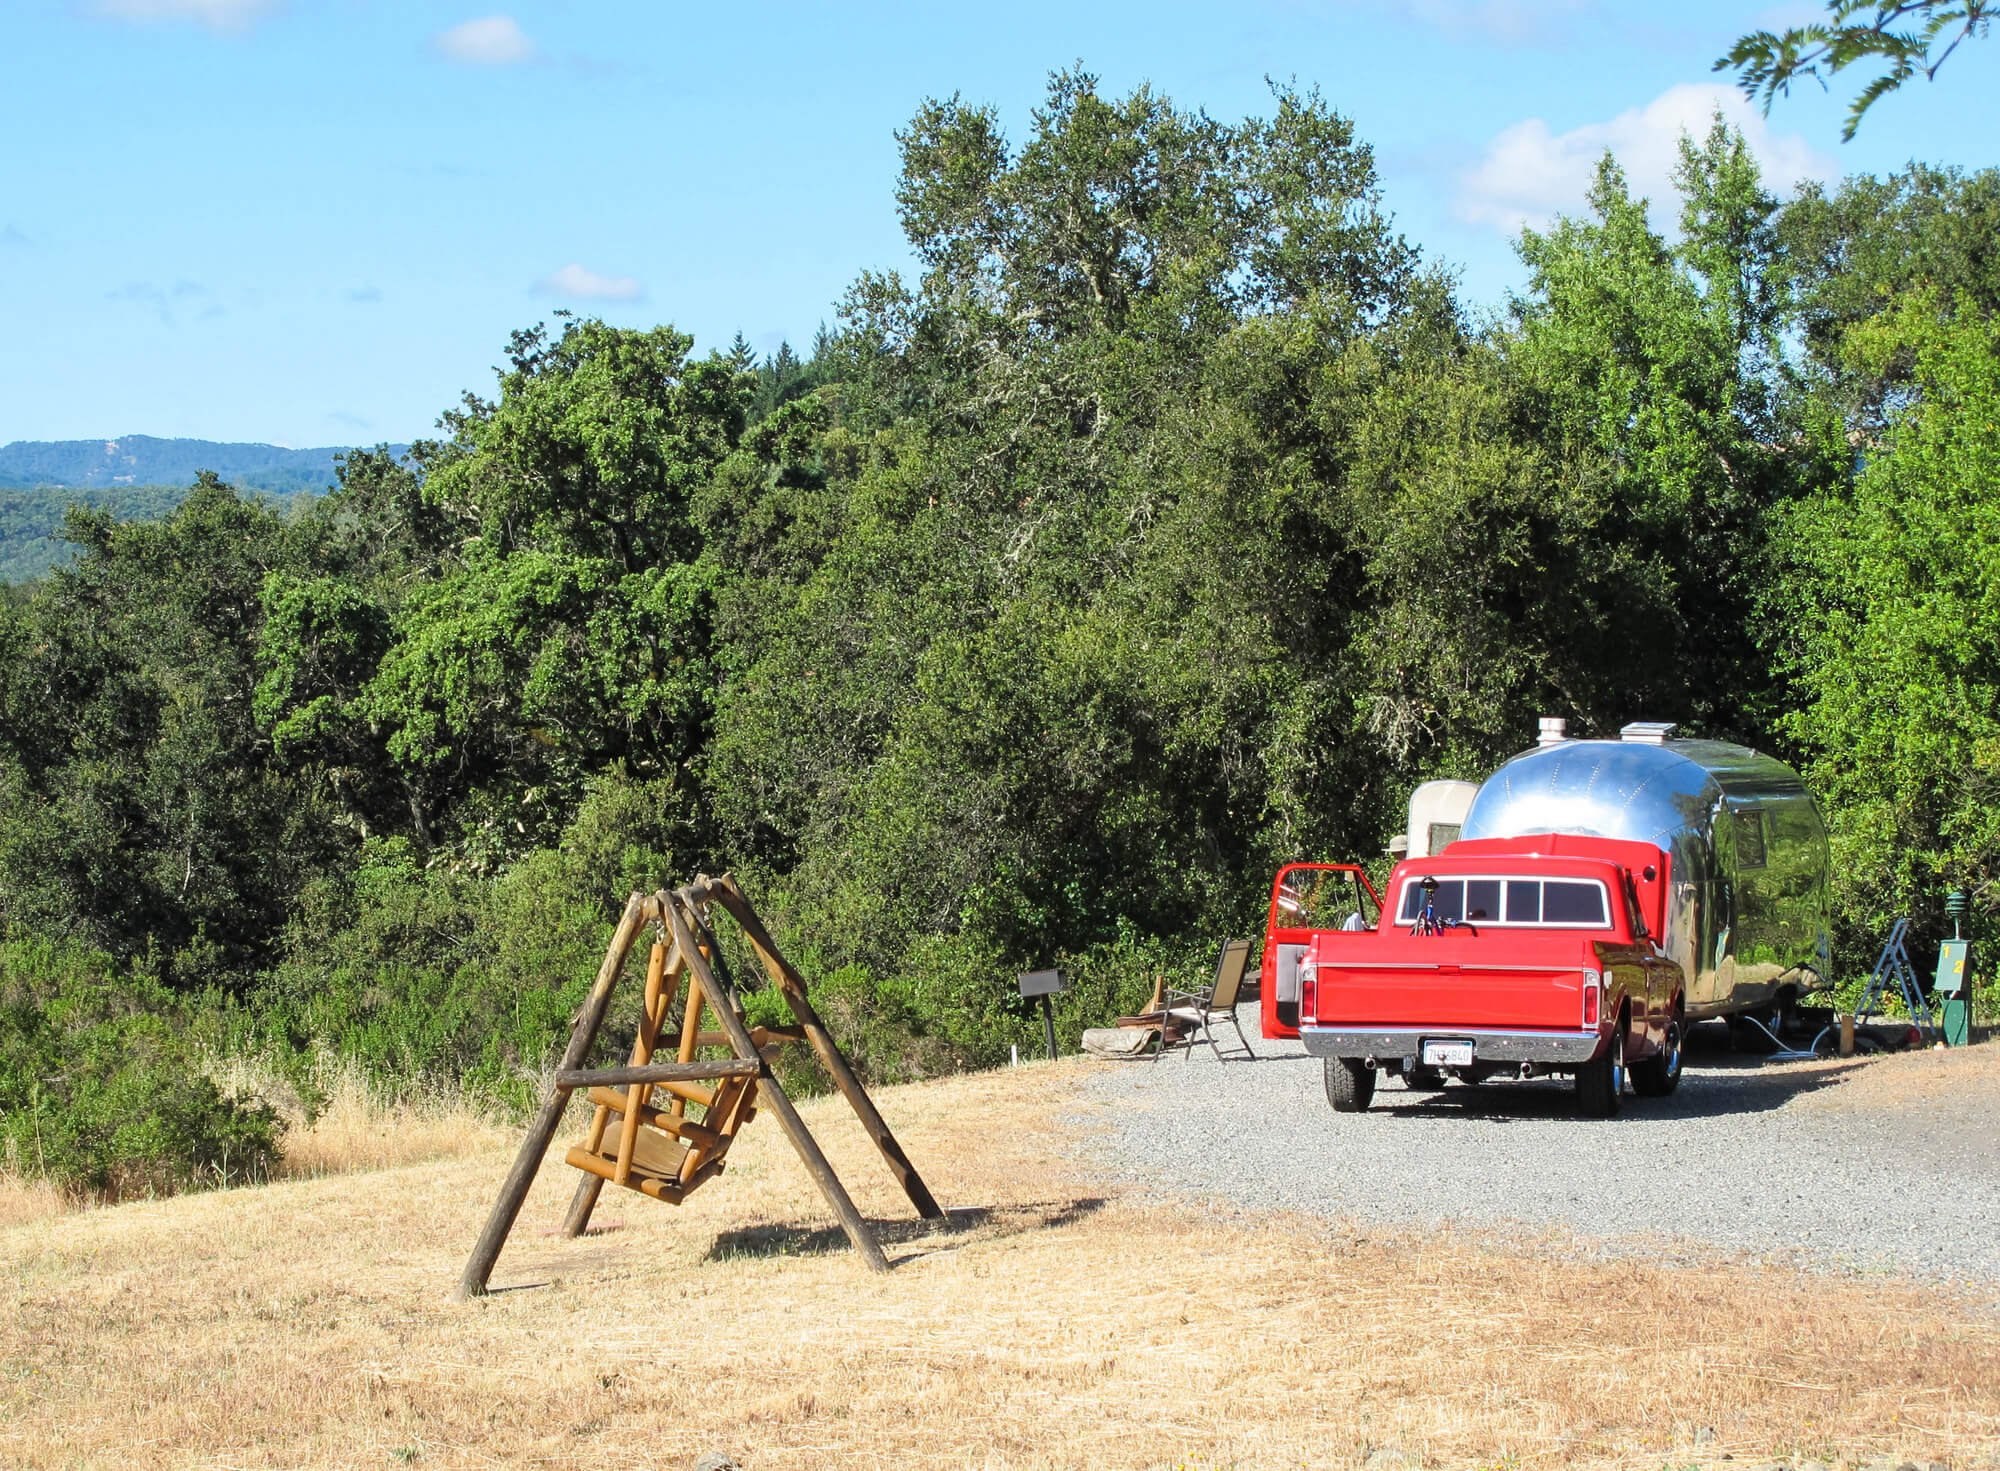 airstream trailers a love of vintage travel